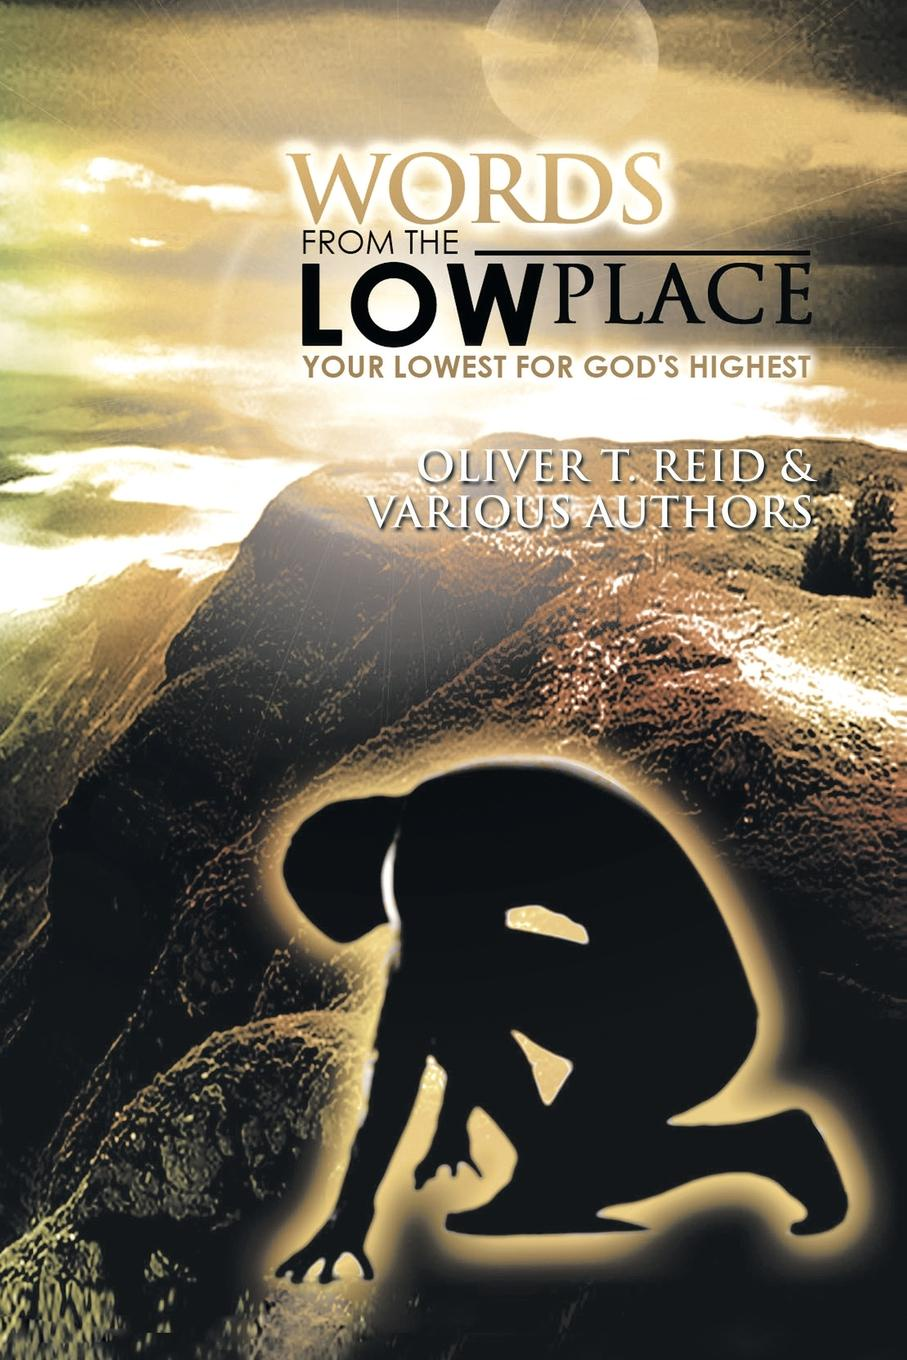 Oliver T. Reid Words from the Low Place. Your Lowest for Gods Highest